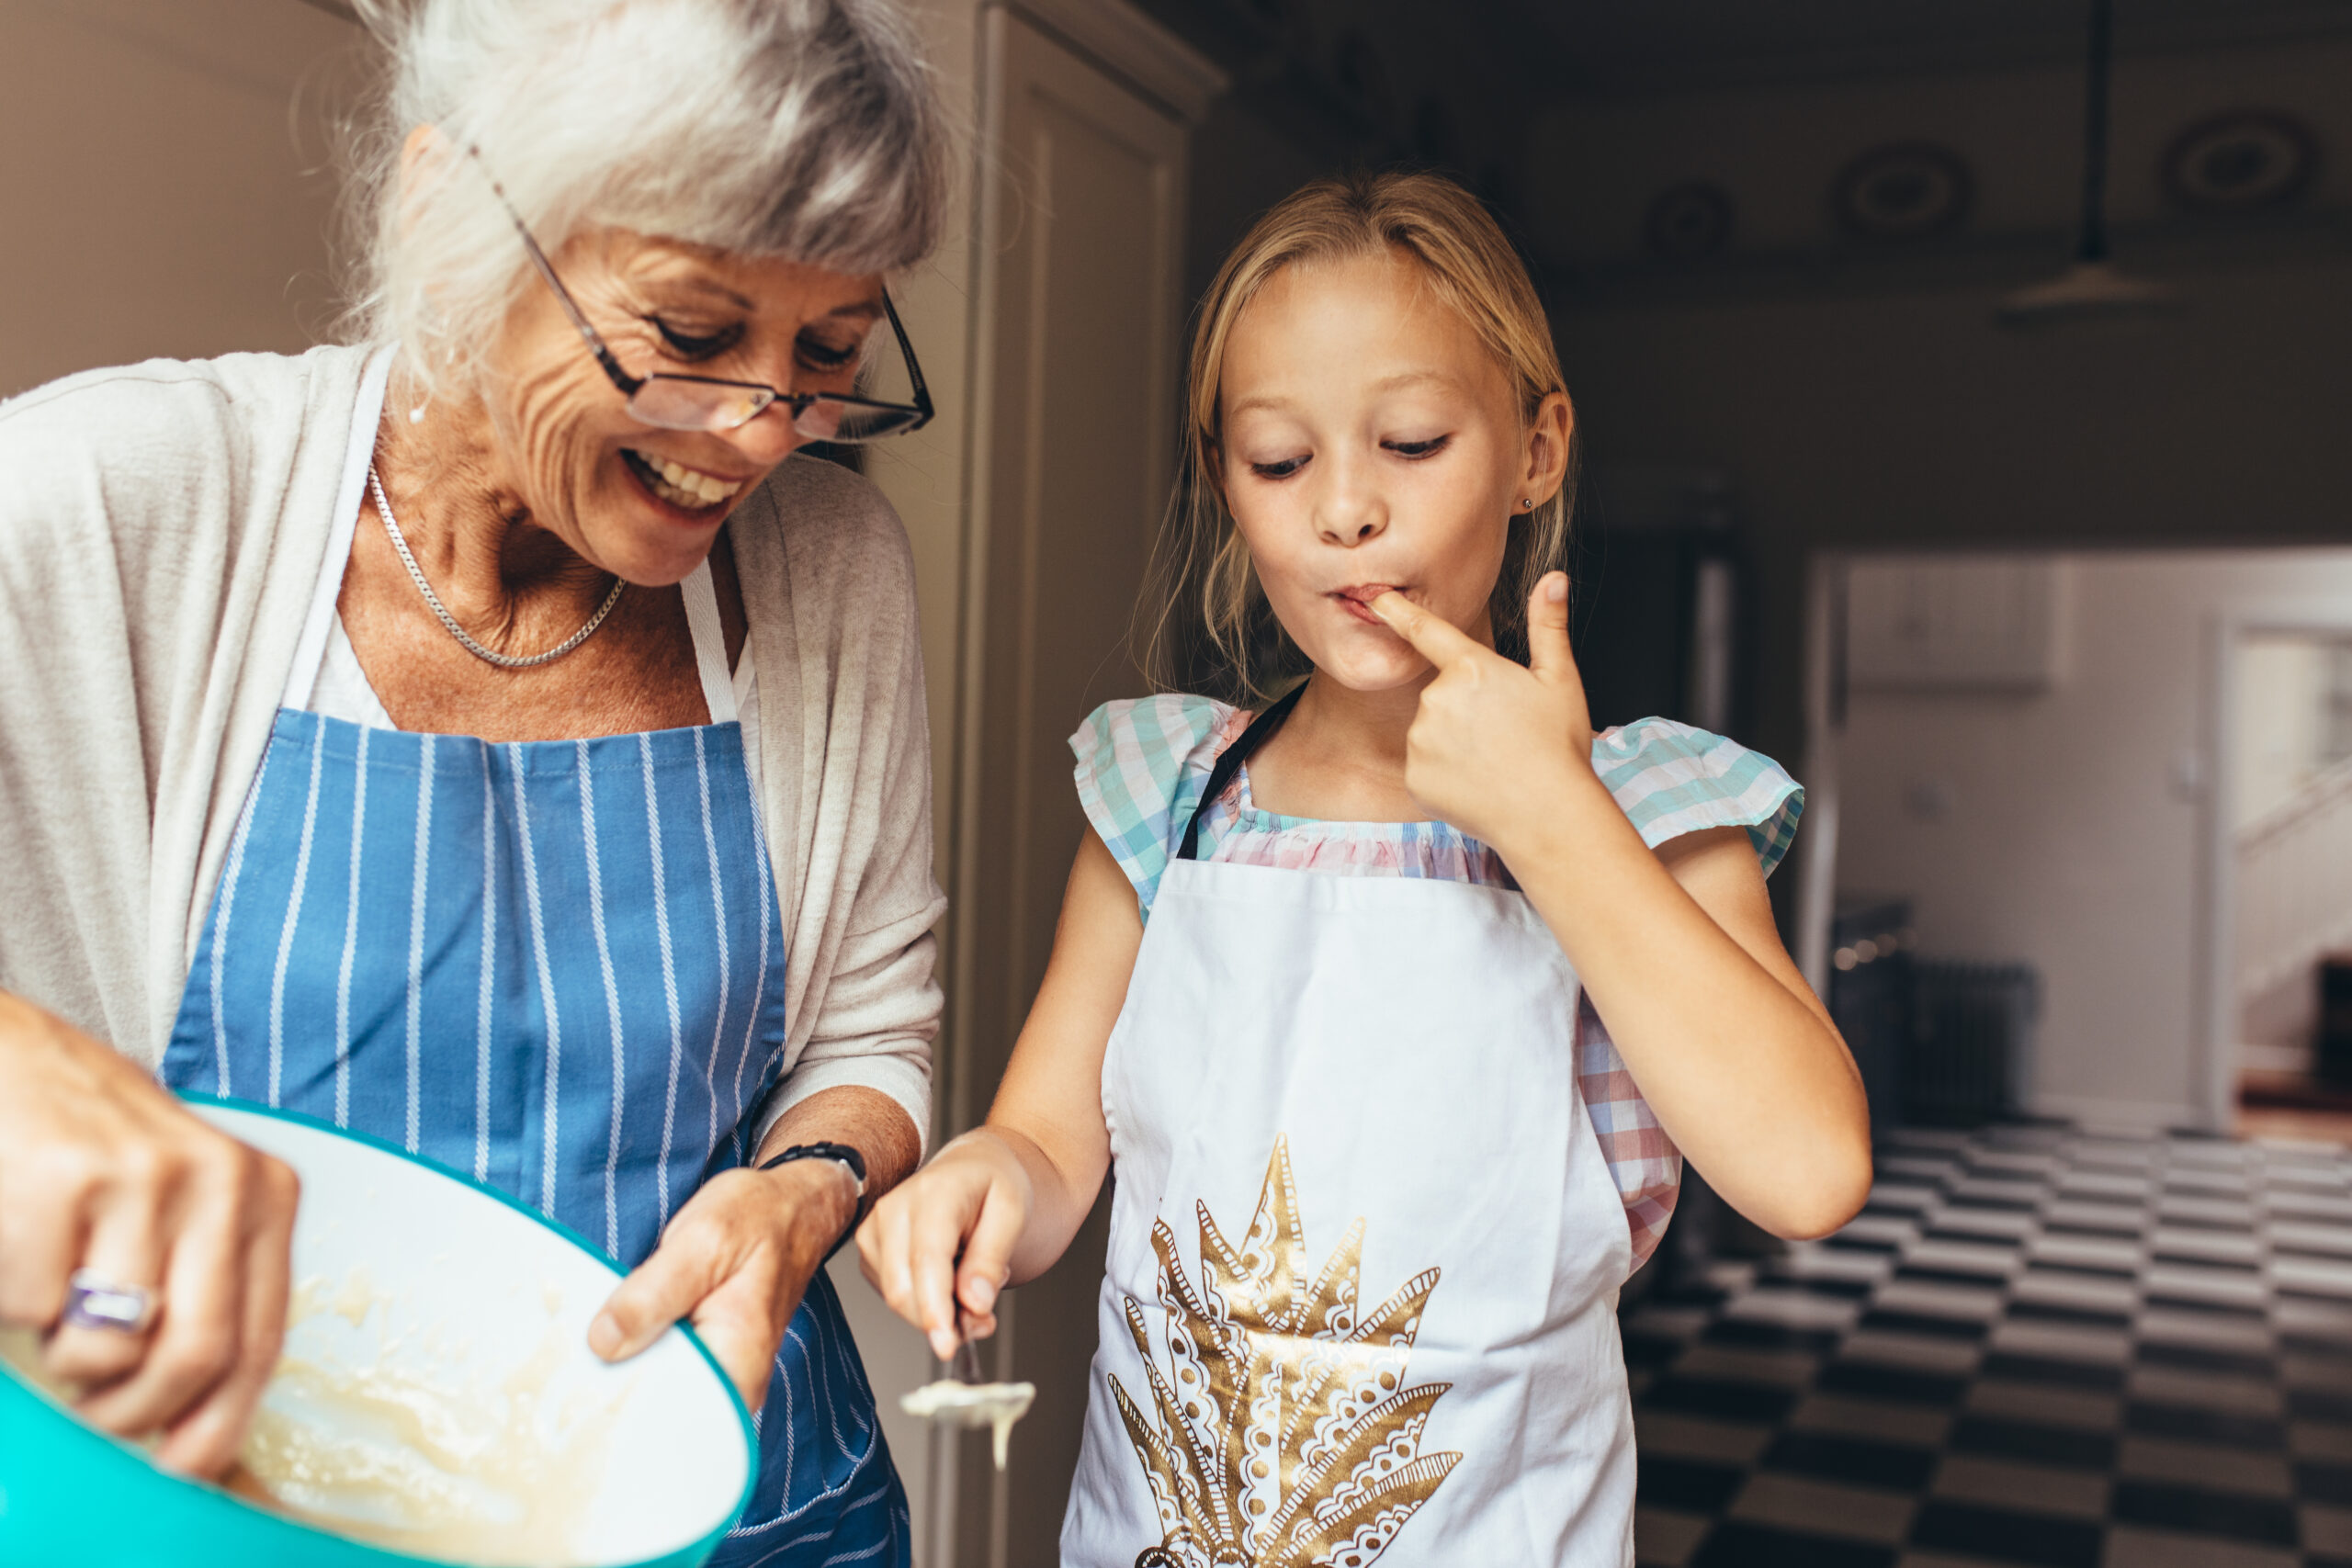 Elderly woman and child baking in kitchen